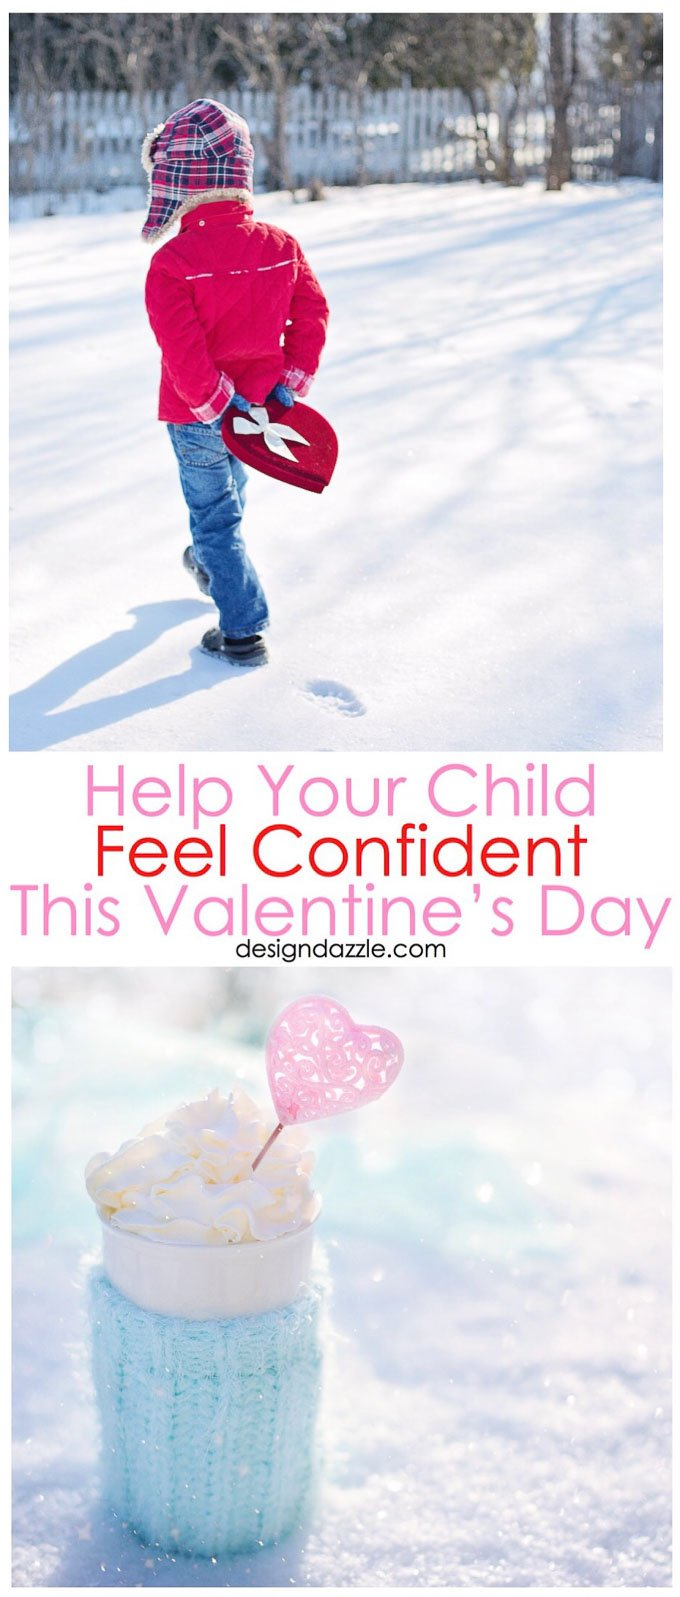 Valentine's Day is about celebrating those we love, and the wonderful people that are in our lives. Help your child feel confident this Valentine's Day! | Design Dazzle